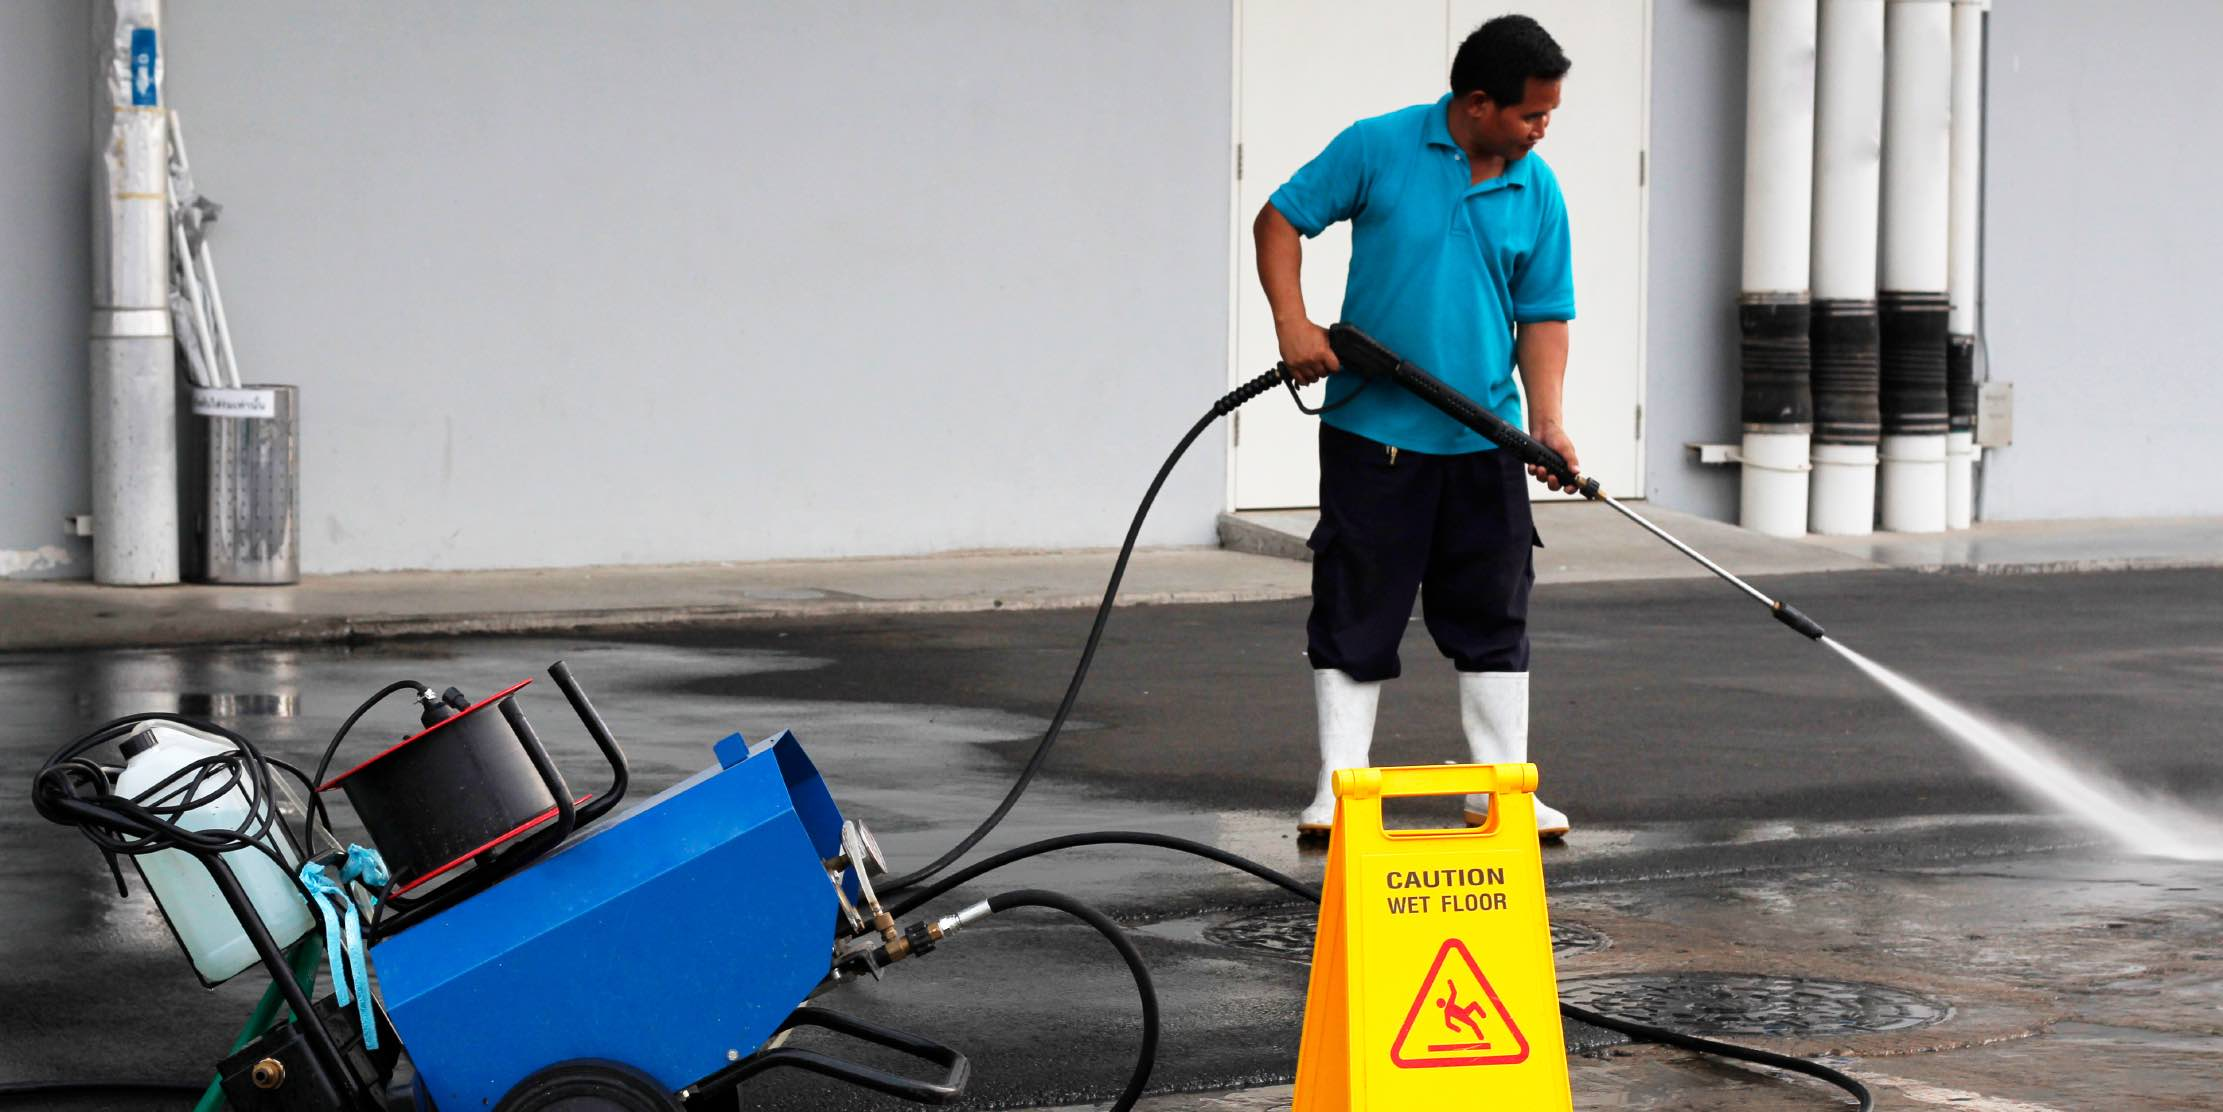 High pressure spray cleaning